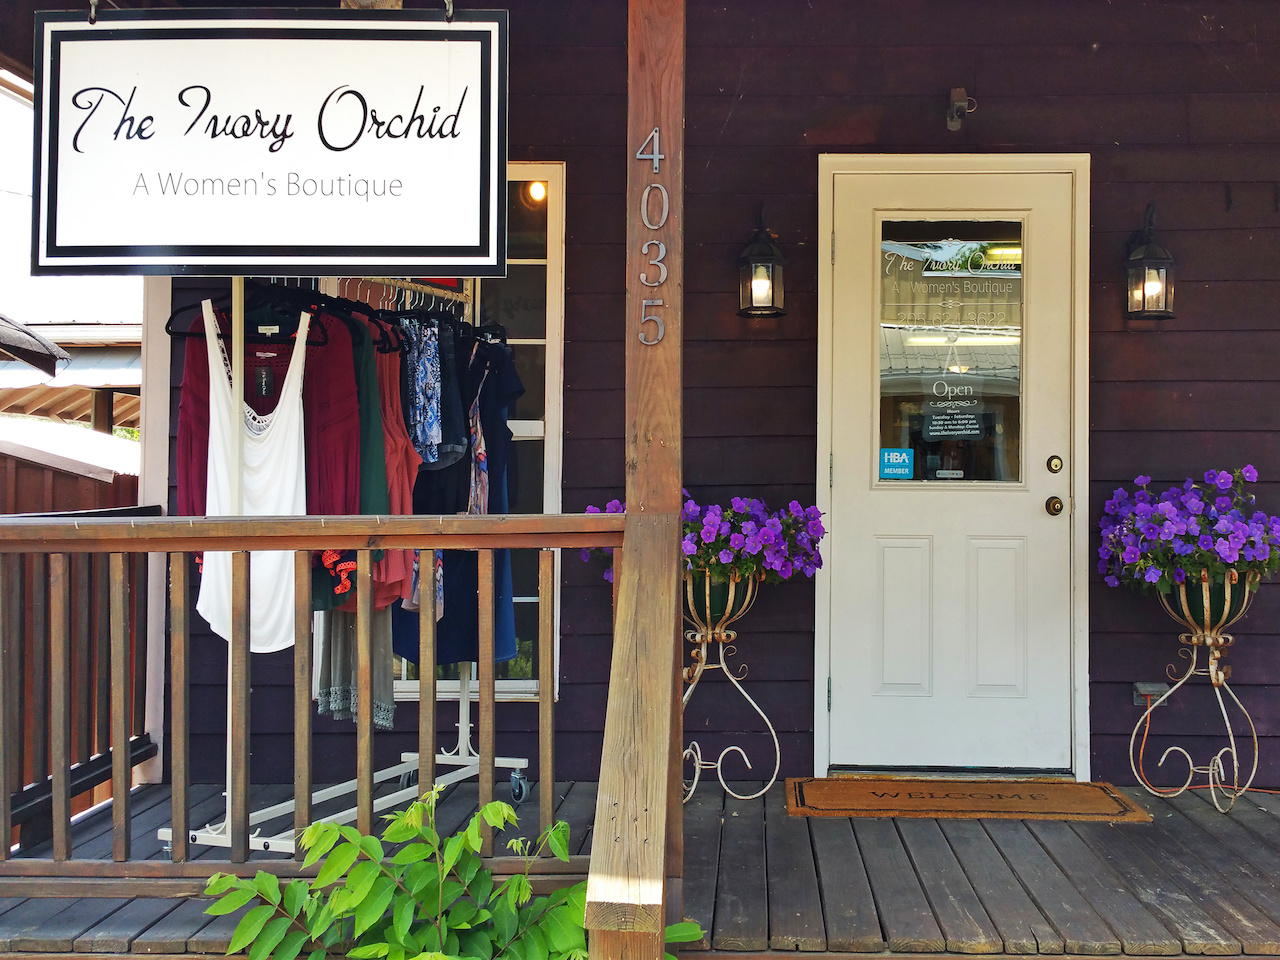 The Ivory Orchid boutique